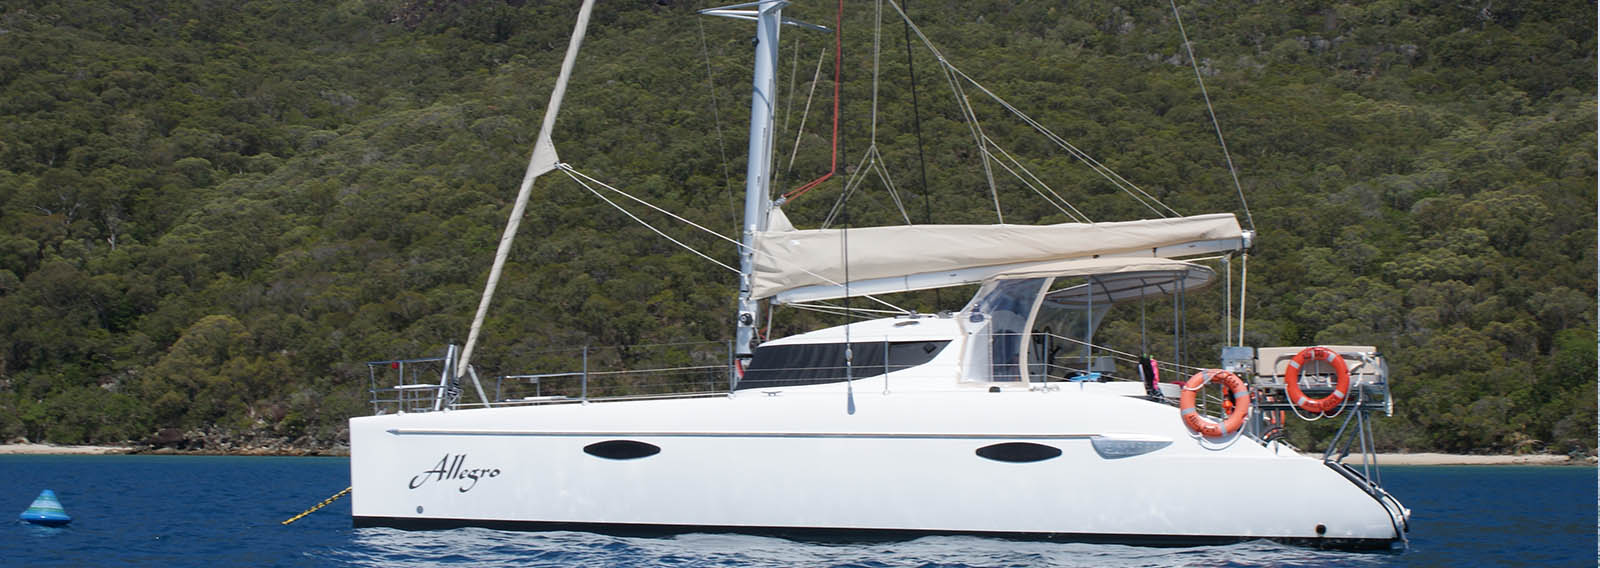 Fountaine-pajot-catamaran-for-hire-whitsundays